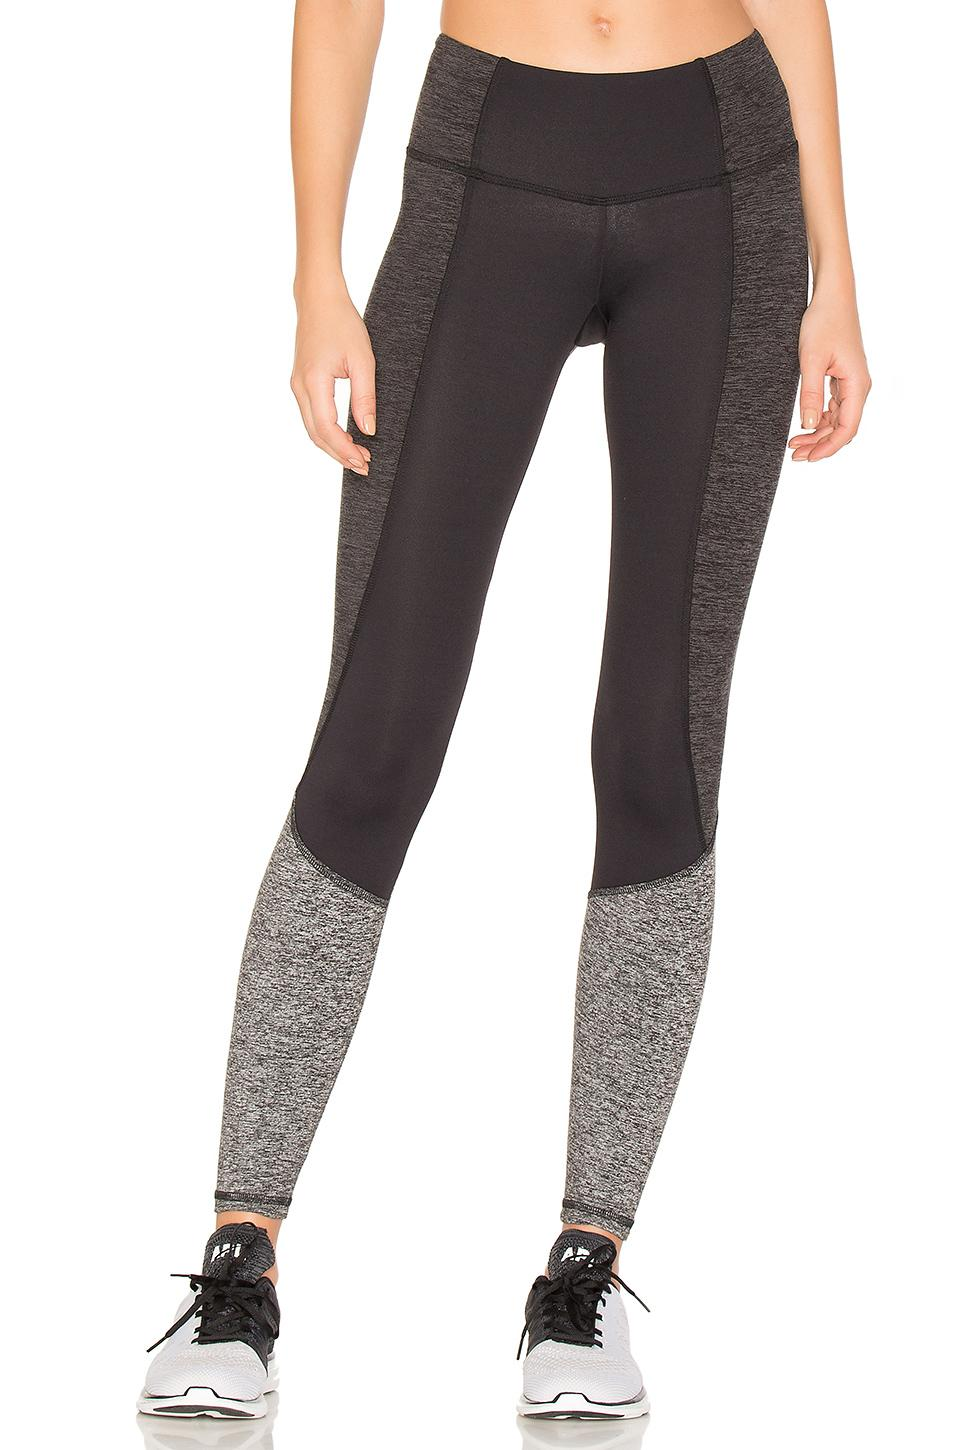 Strut This The Ryder Legging In Gray